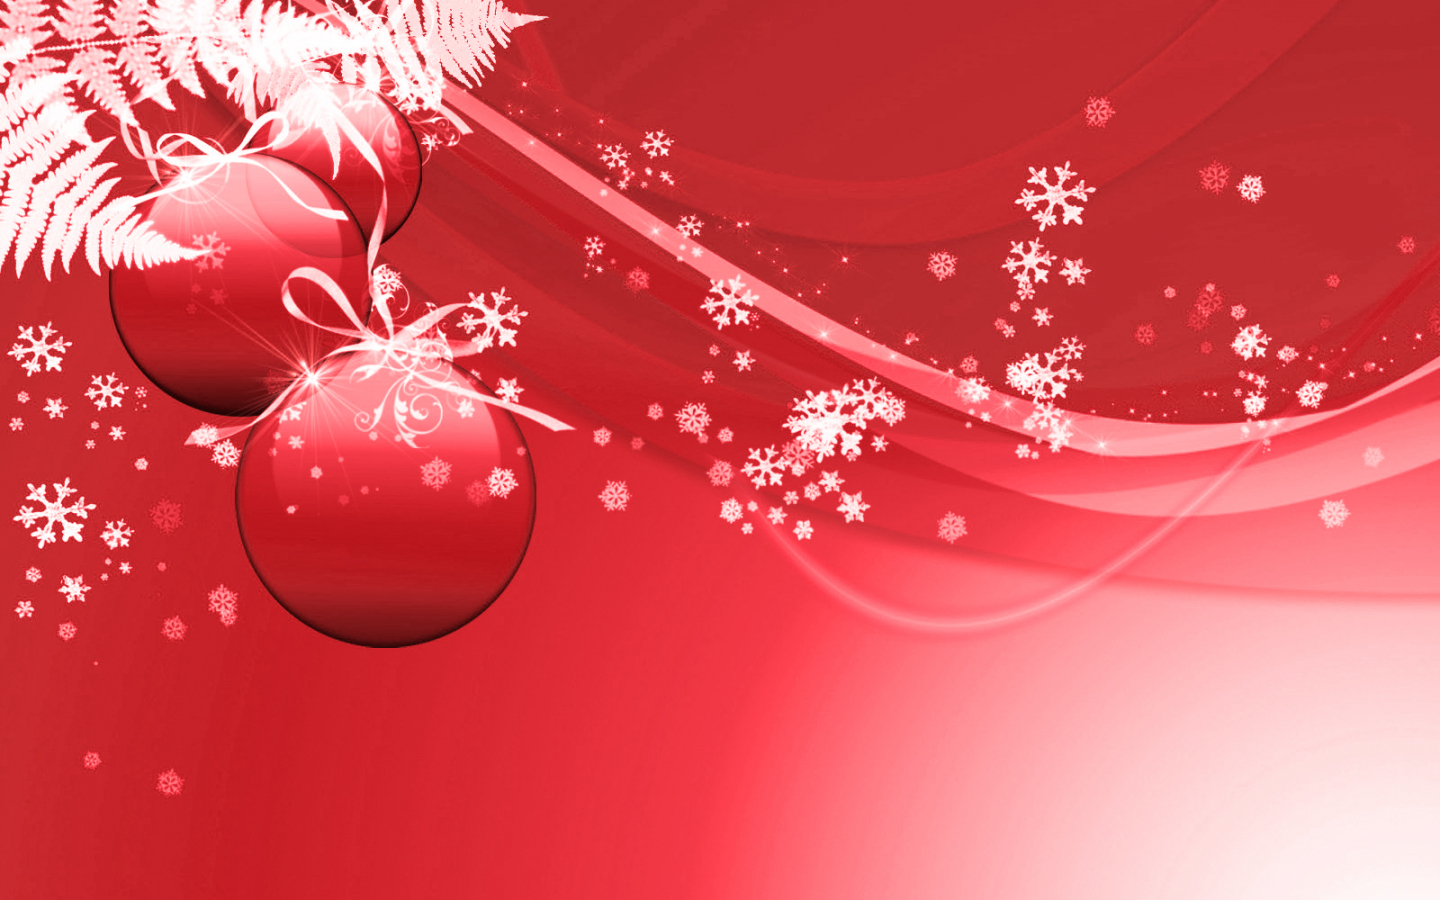 Christmas Background Images For Photoshop.Free Download Christmas Backgrounds For Photoshop